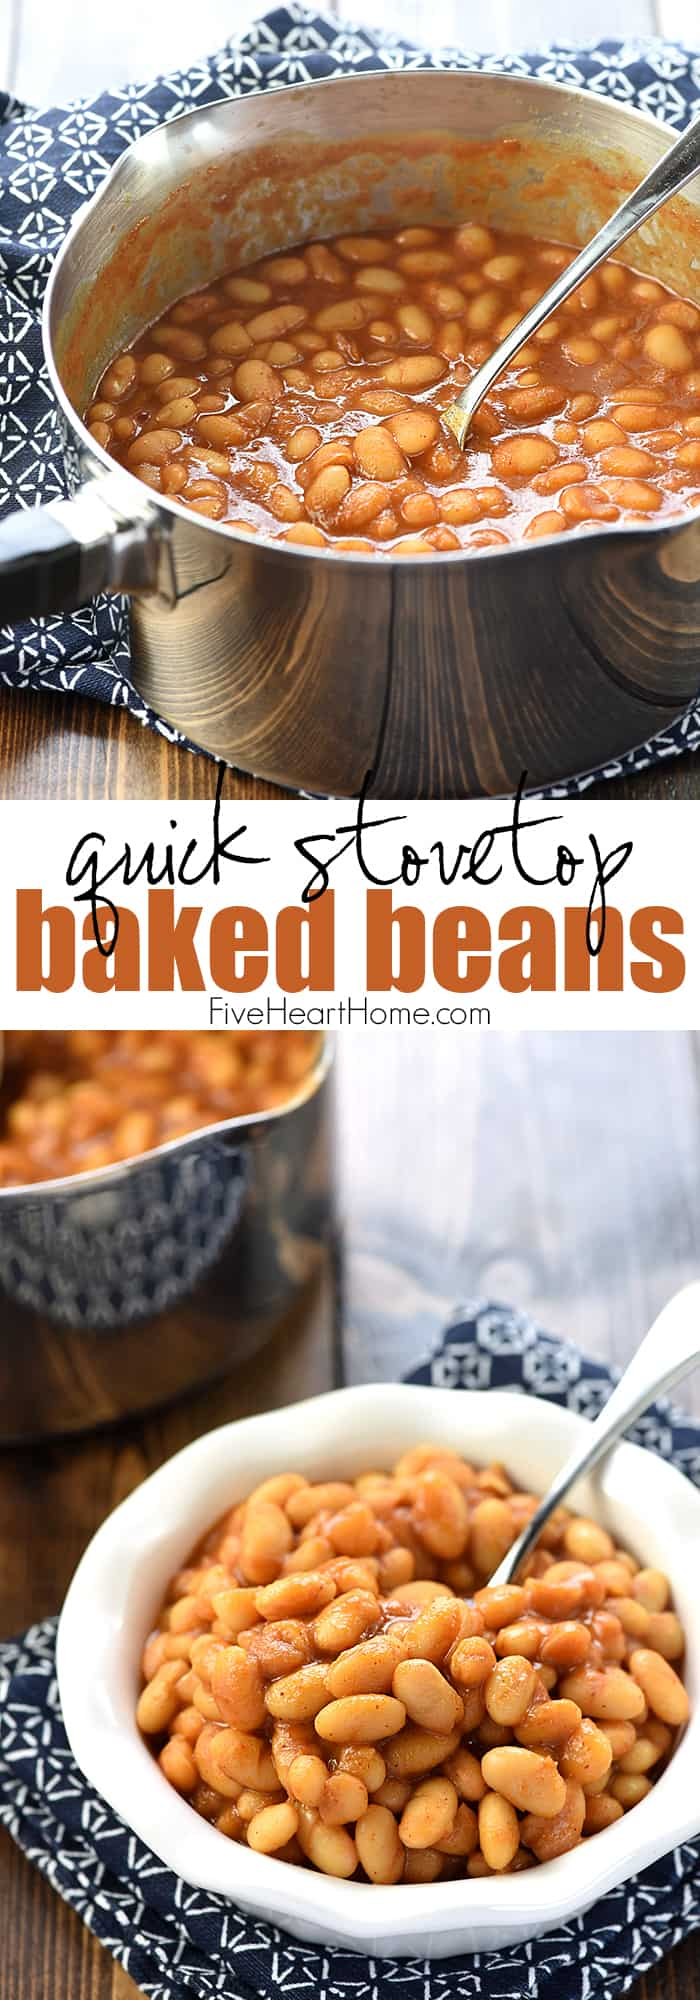 Quick Stovetop Baked Beans ~ a quick and easy, 5-ingredient recipe that dresses up canned white beans for a versatile dinnertime side dish! | FiveHeartHome.com